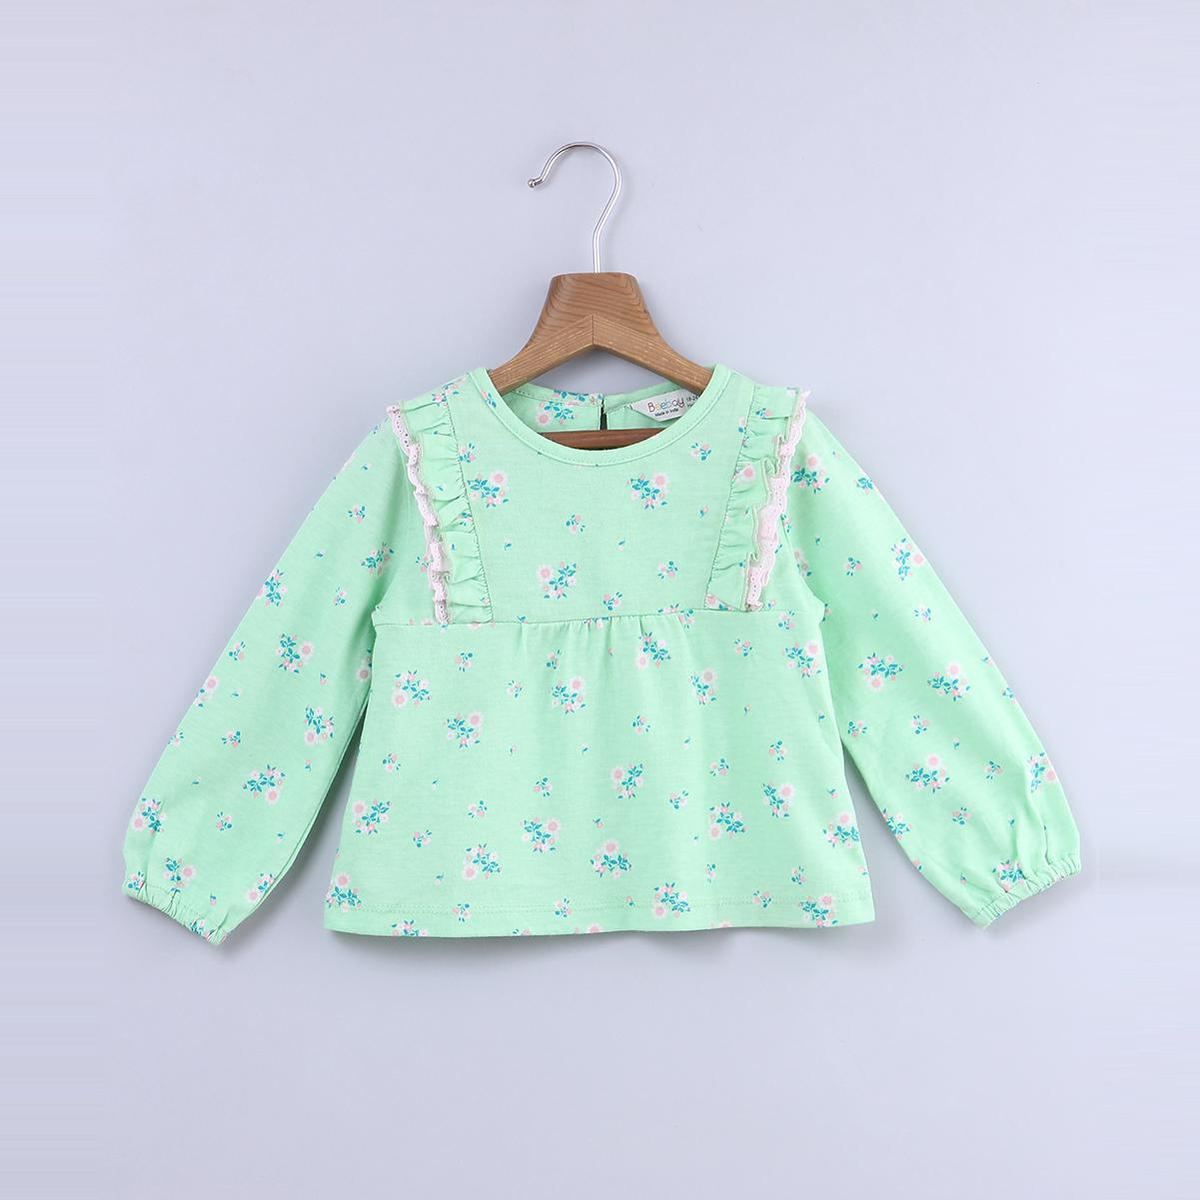 Beebay - Green Colored Ditsy Floral Frill Cotton Top For Infants Girls